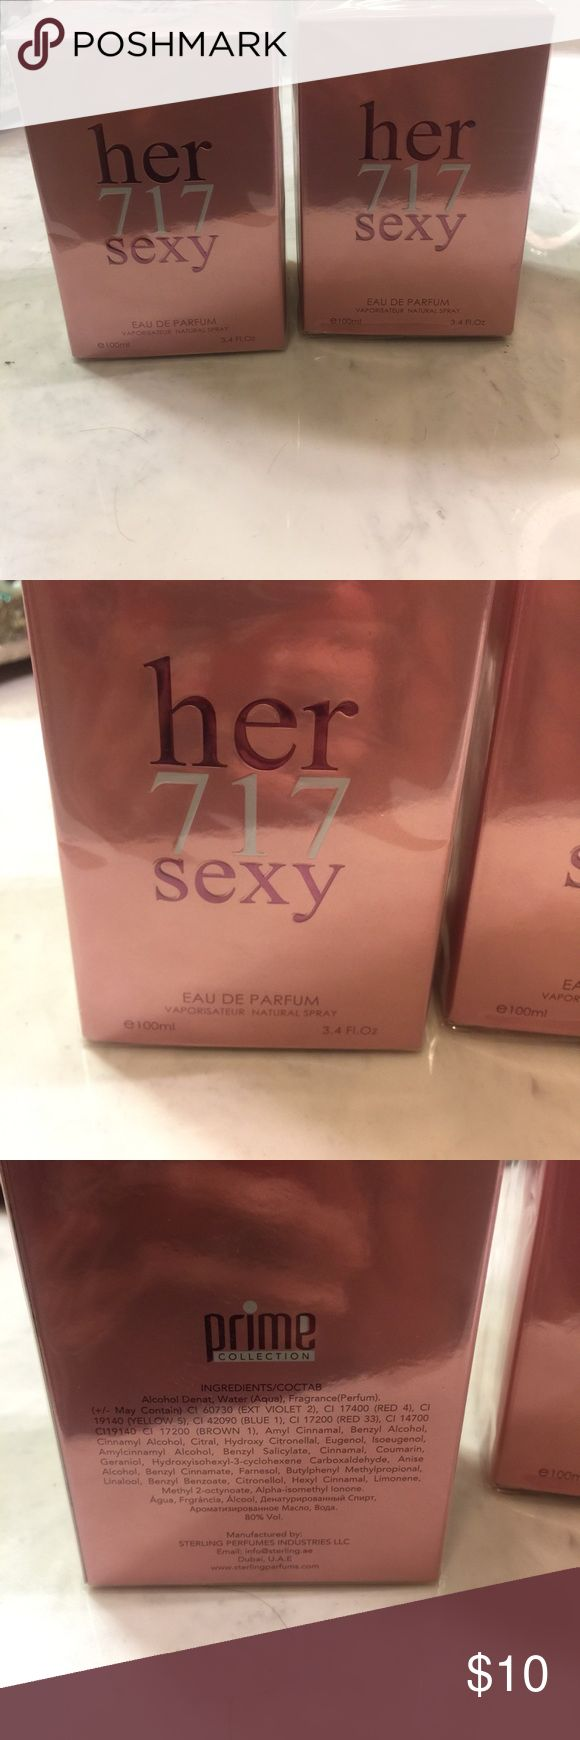 New , still in package, parfum Her 717 sexy perfume . Still in package her 717 sexy Other